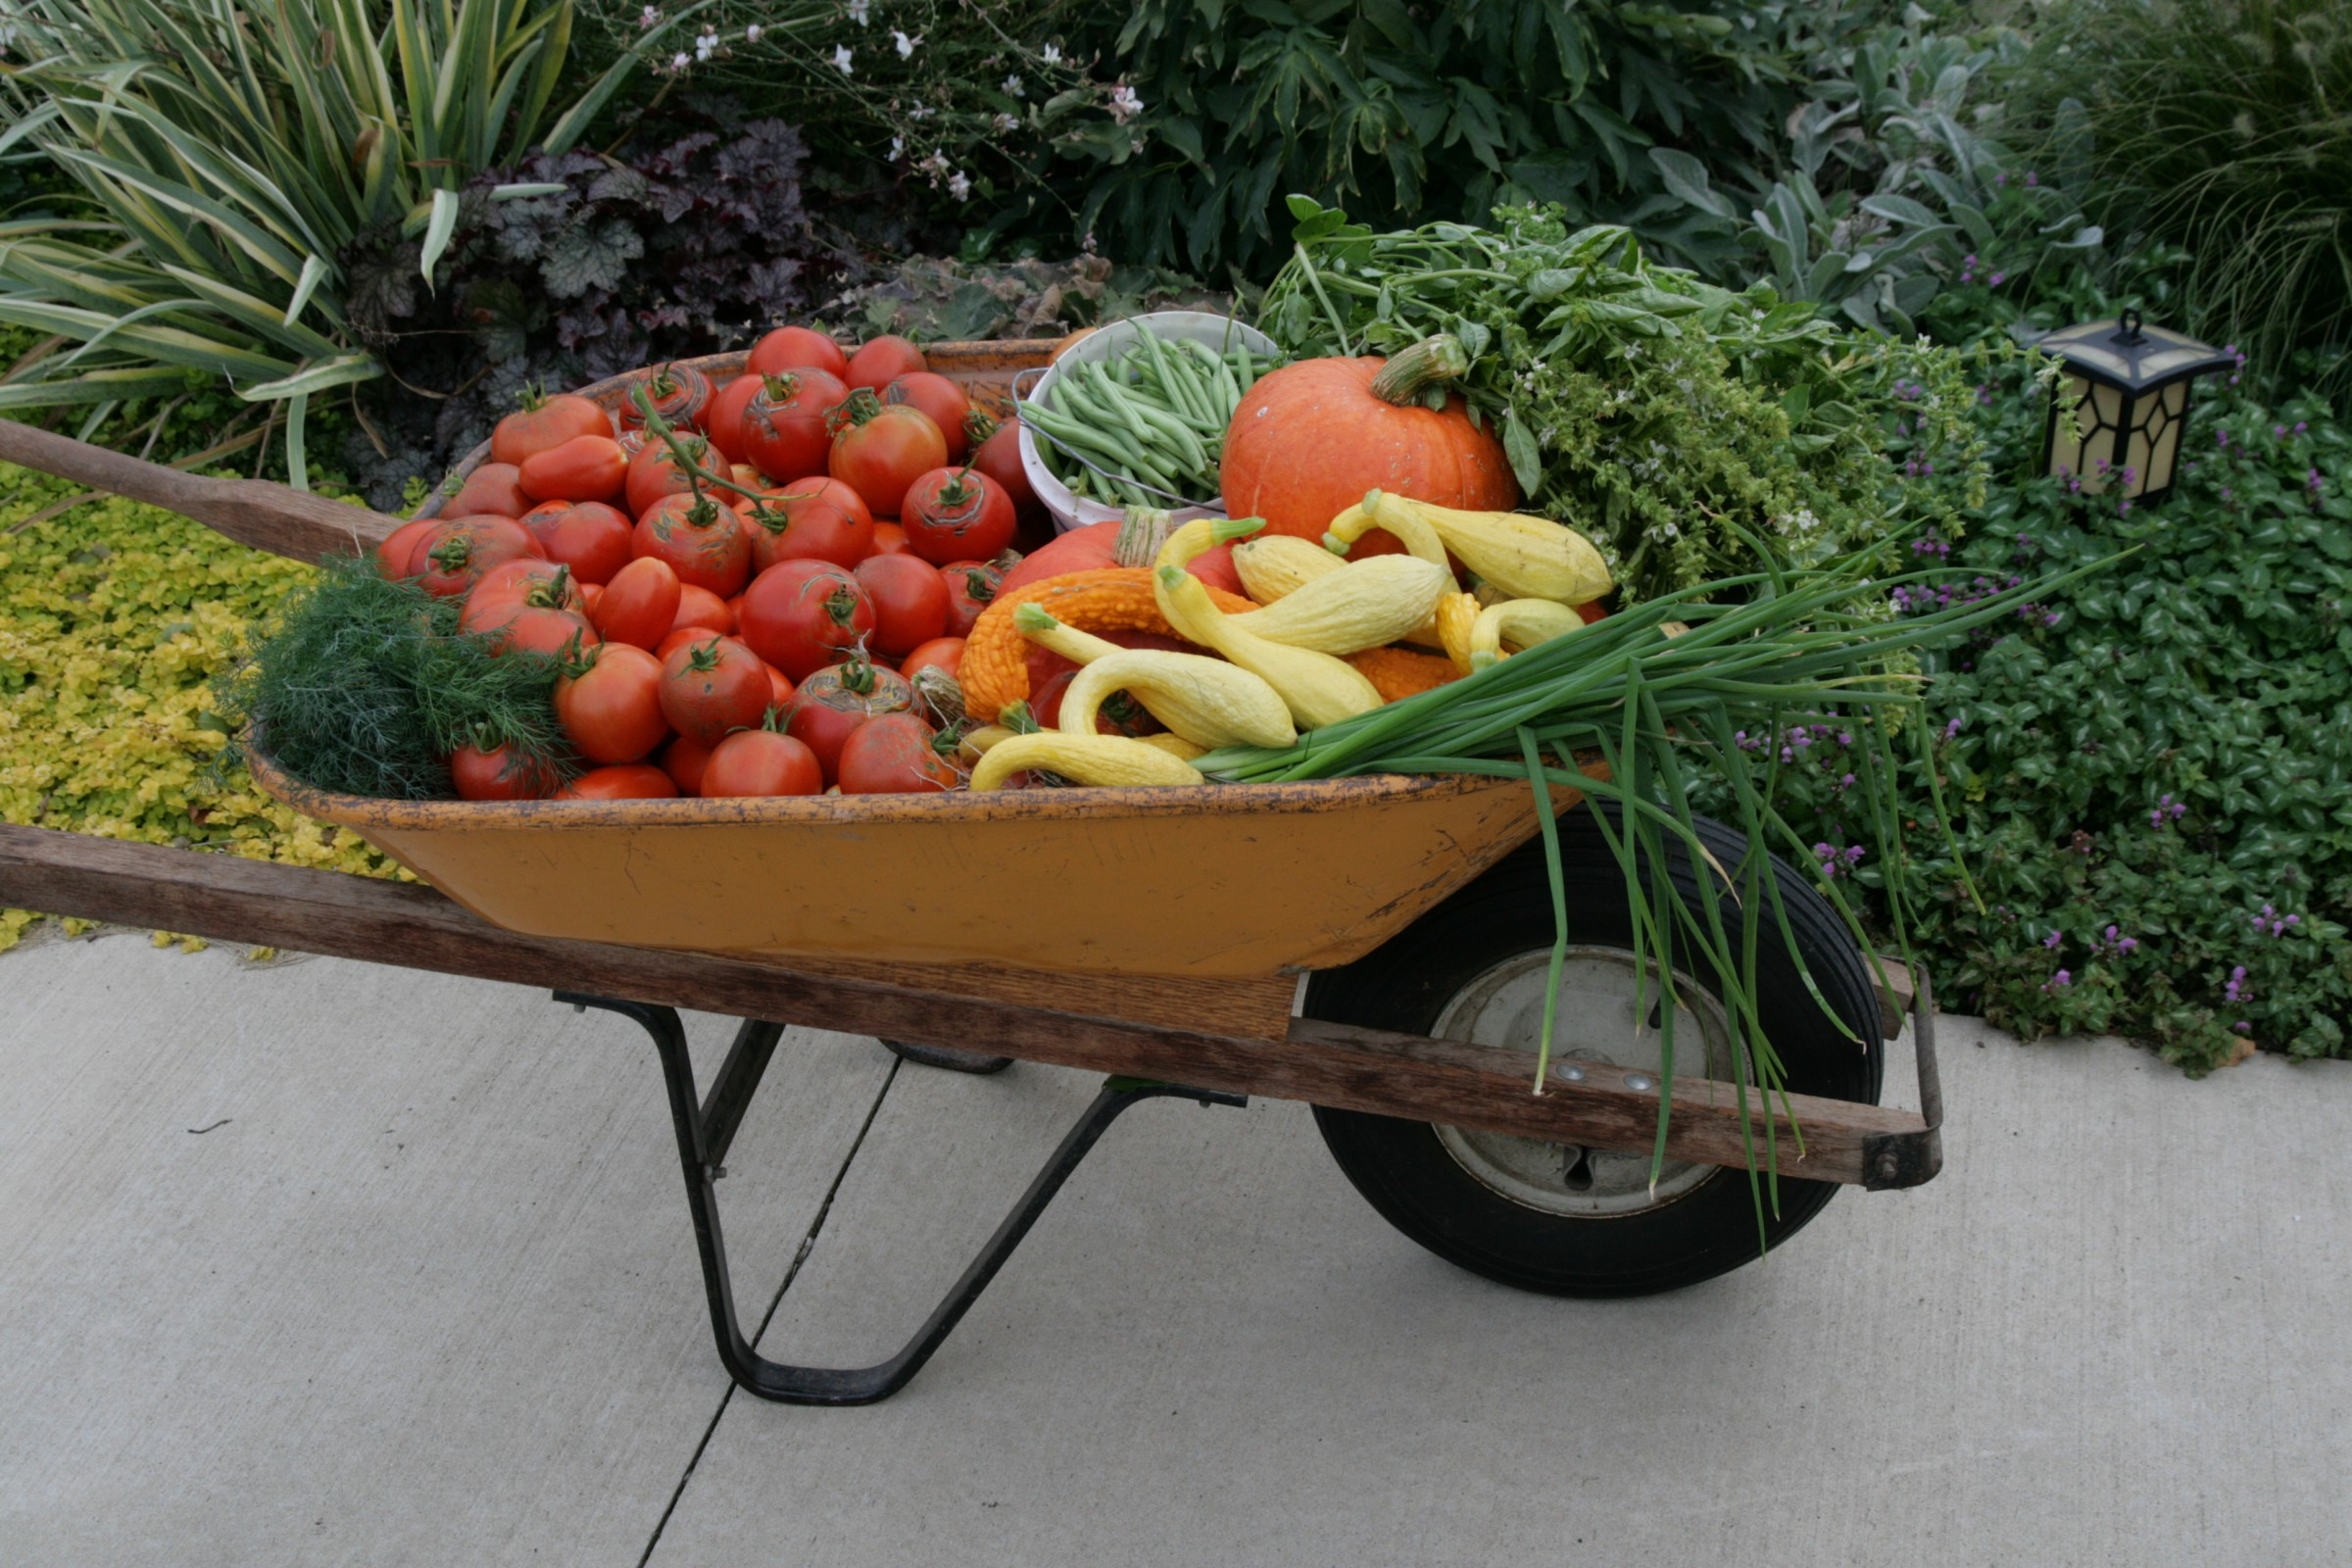 Wheelbarrow full of vegetable produce